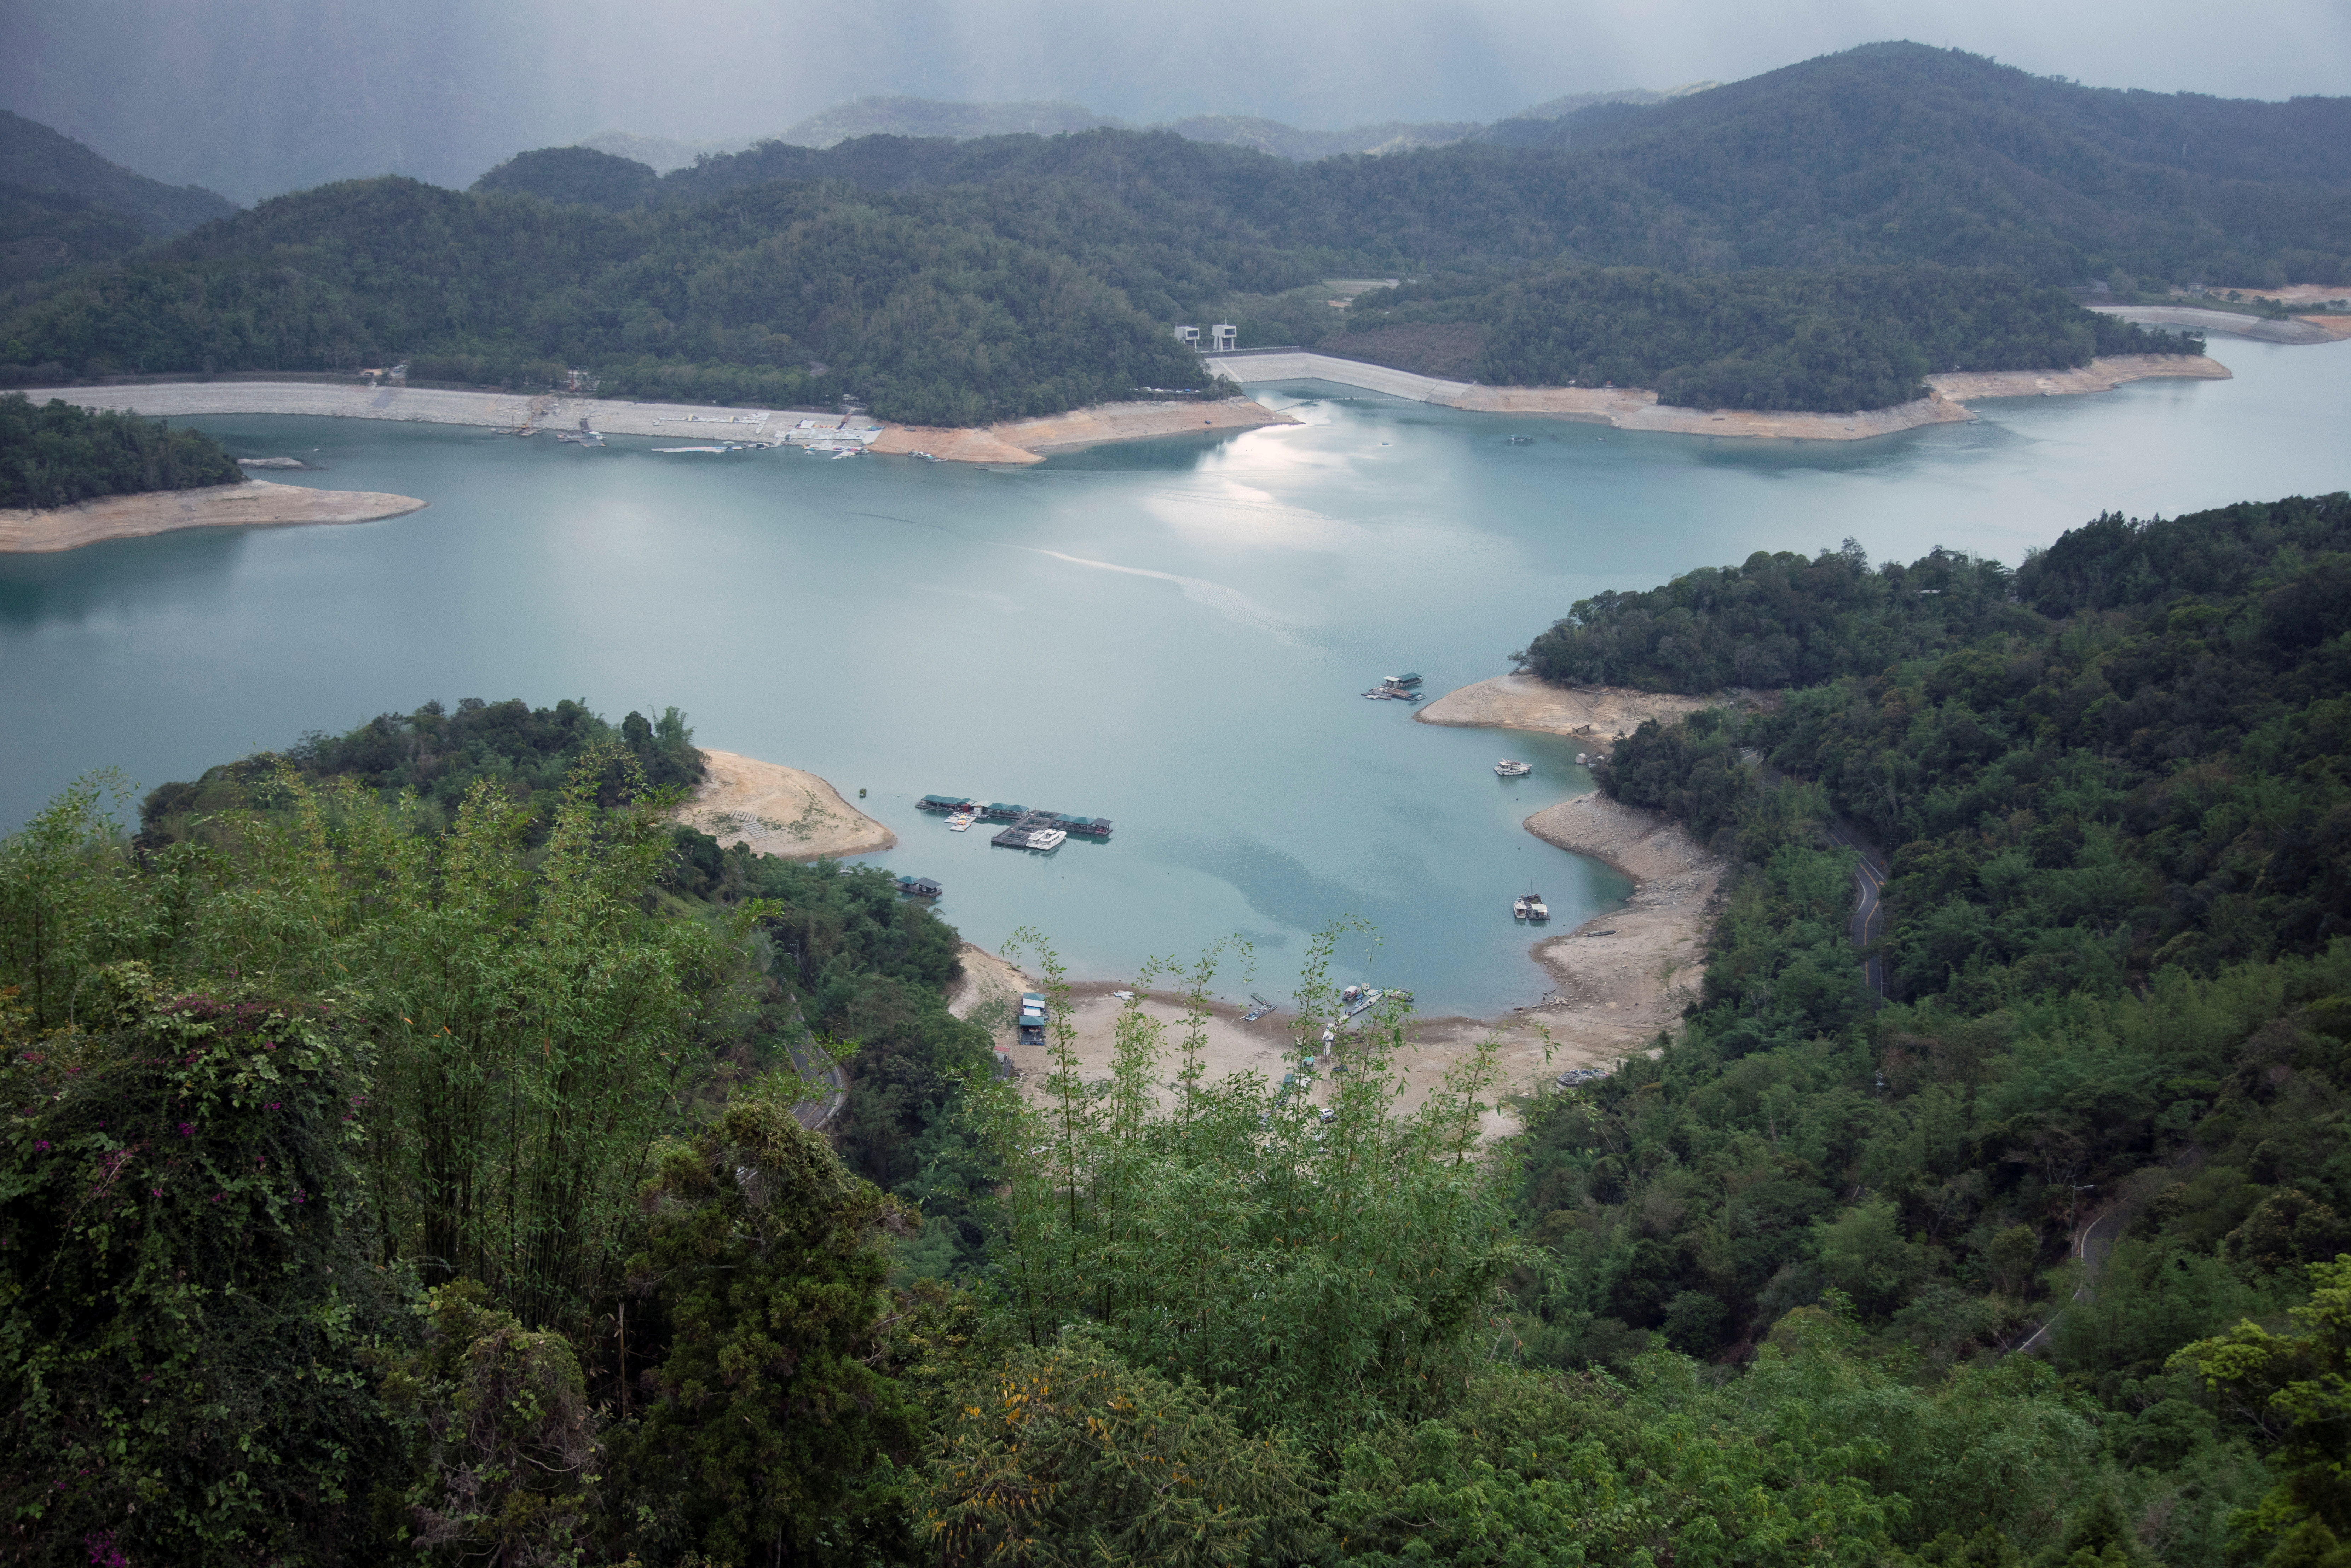 A general view shows the Sun Moon Lake with low water levels during an islandwide drought, in Nantou, Taiwan May 15, 2021. REUTERS/Annabelle Chih